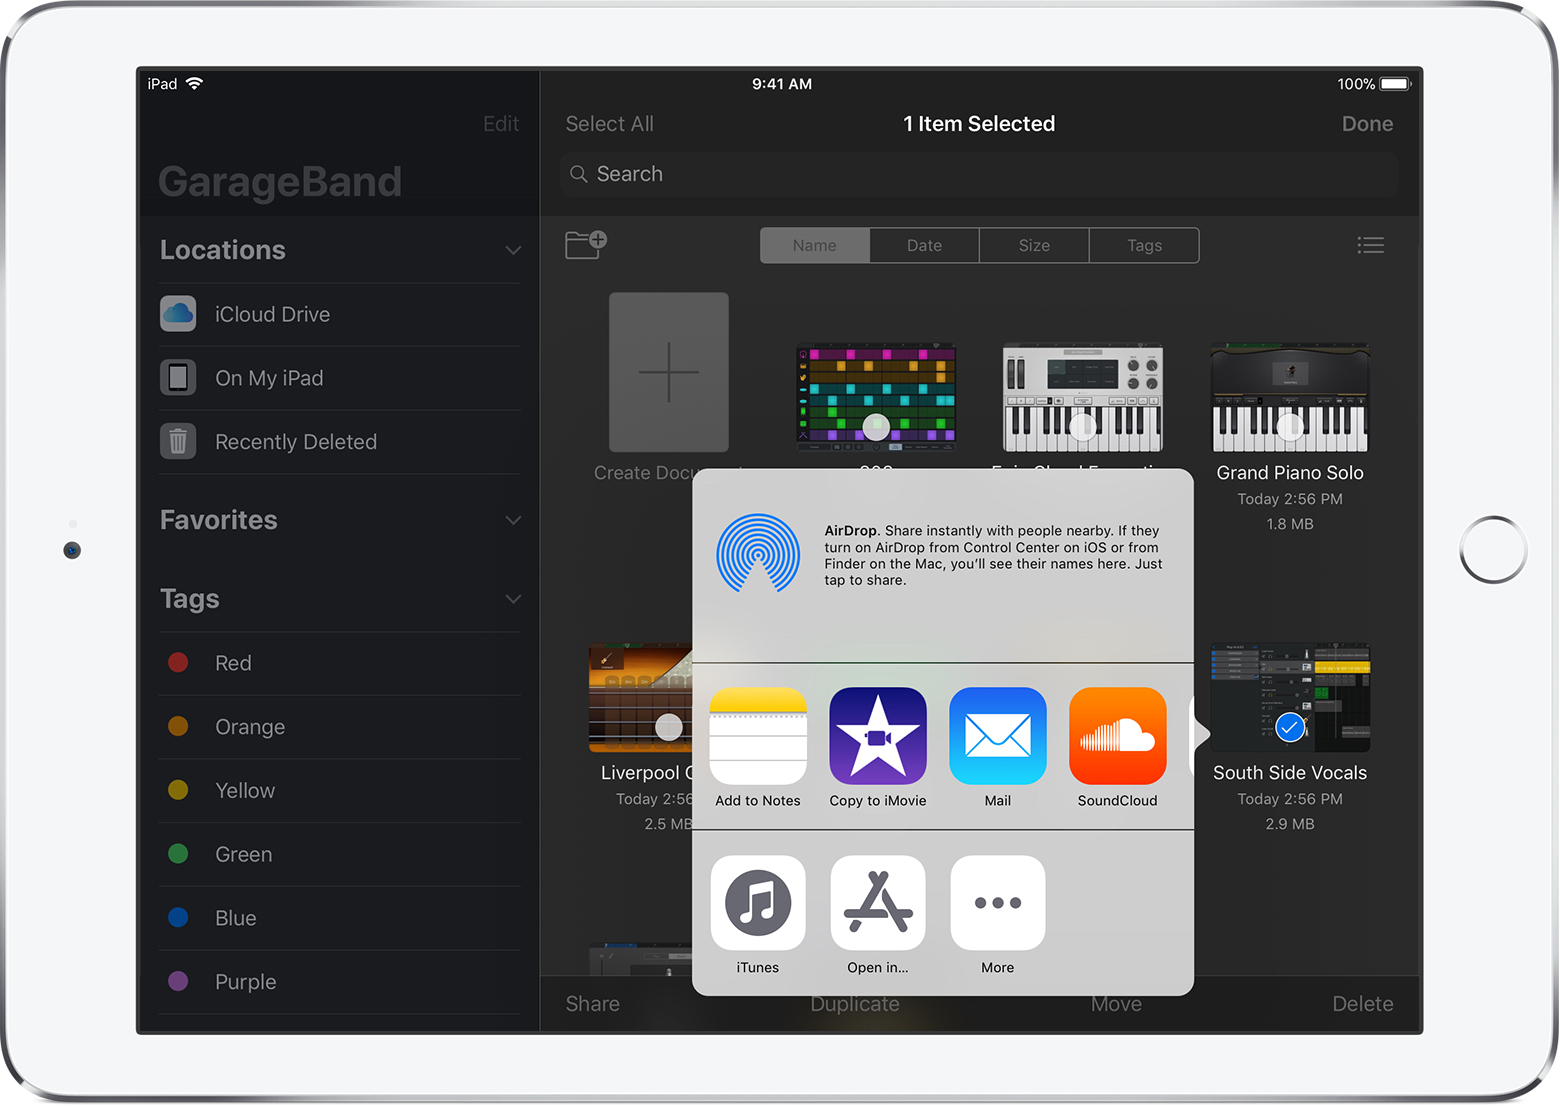 Share GarageBand for iOS songs or Music Memos to YouTube